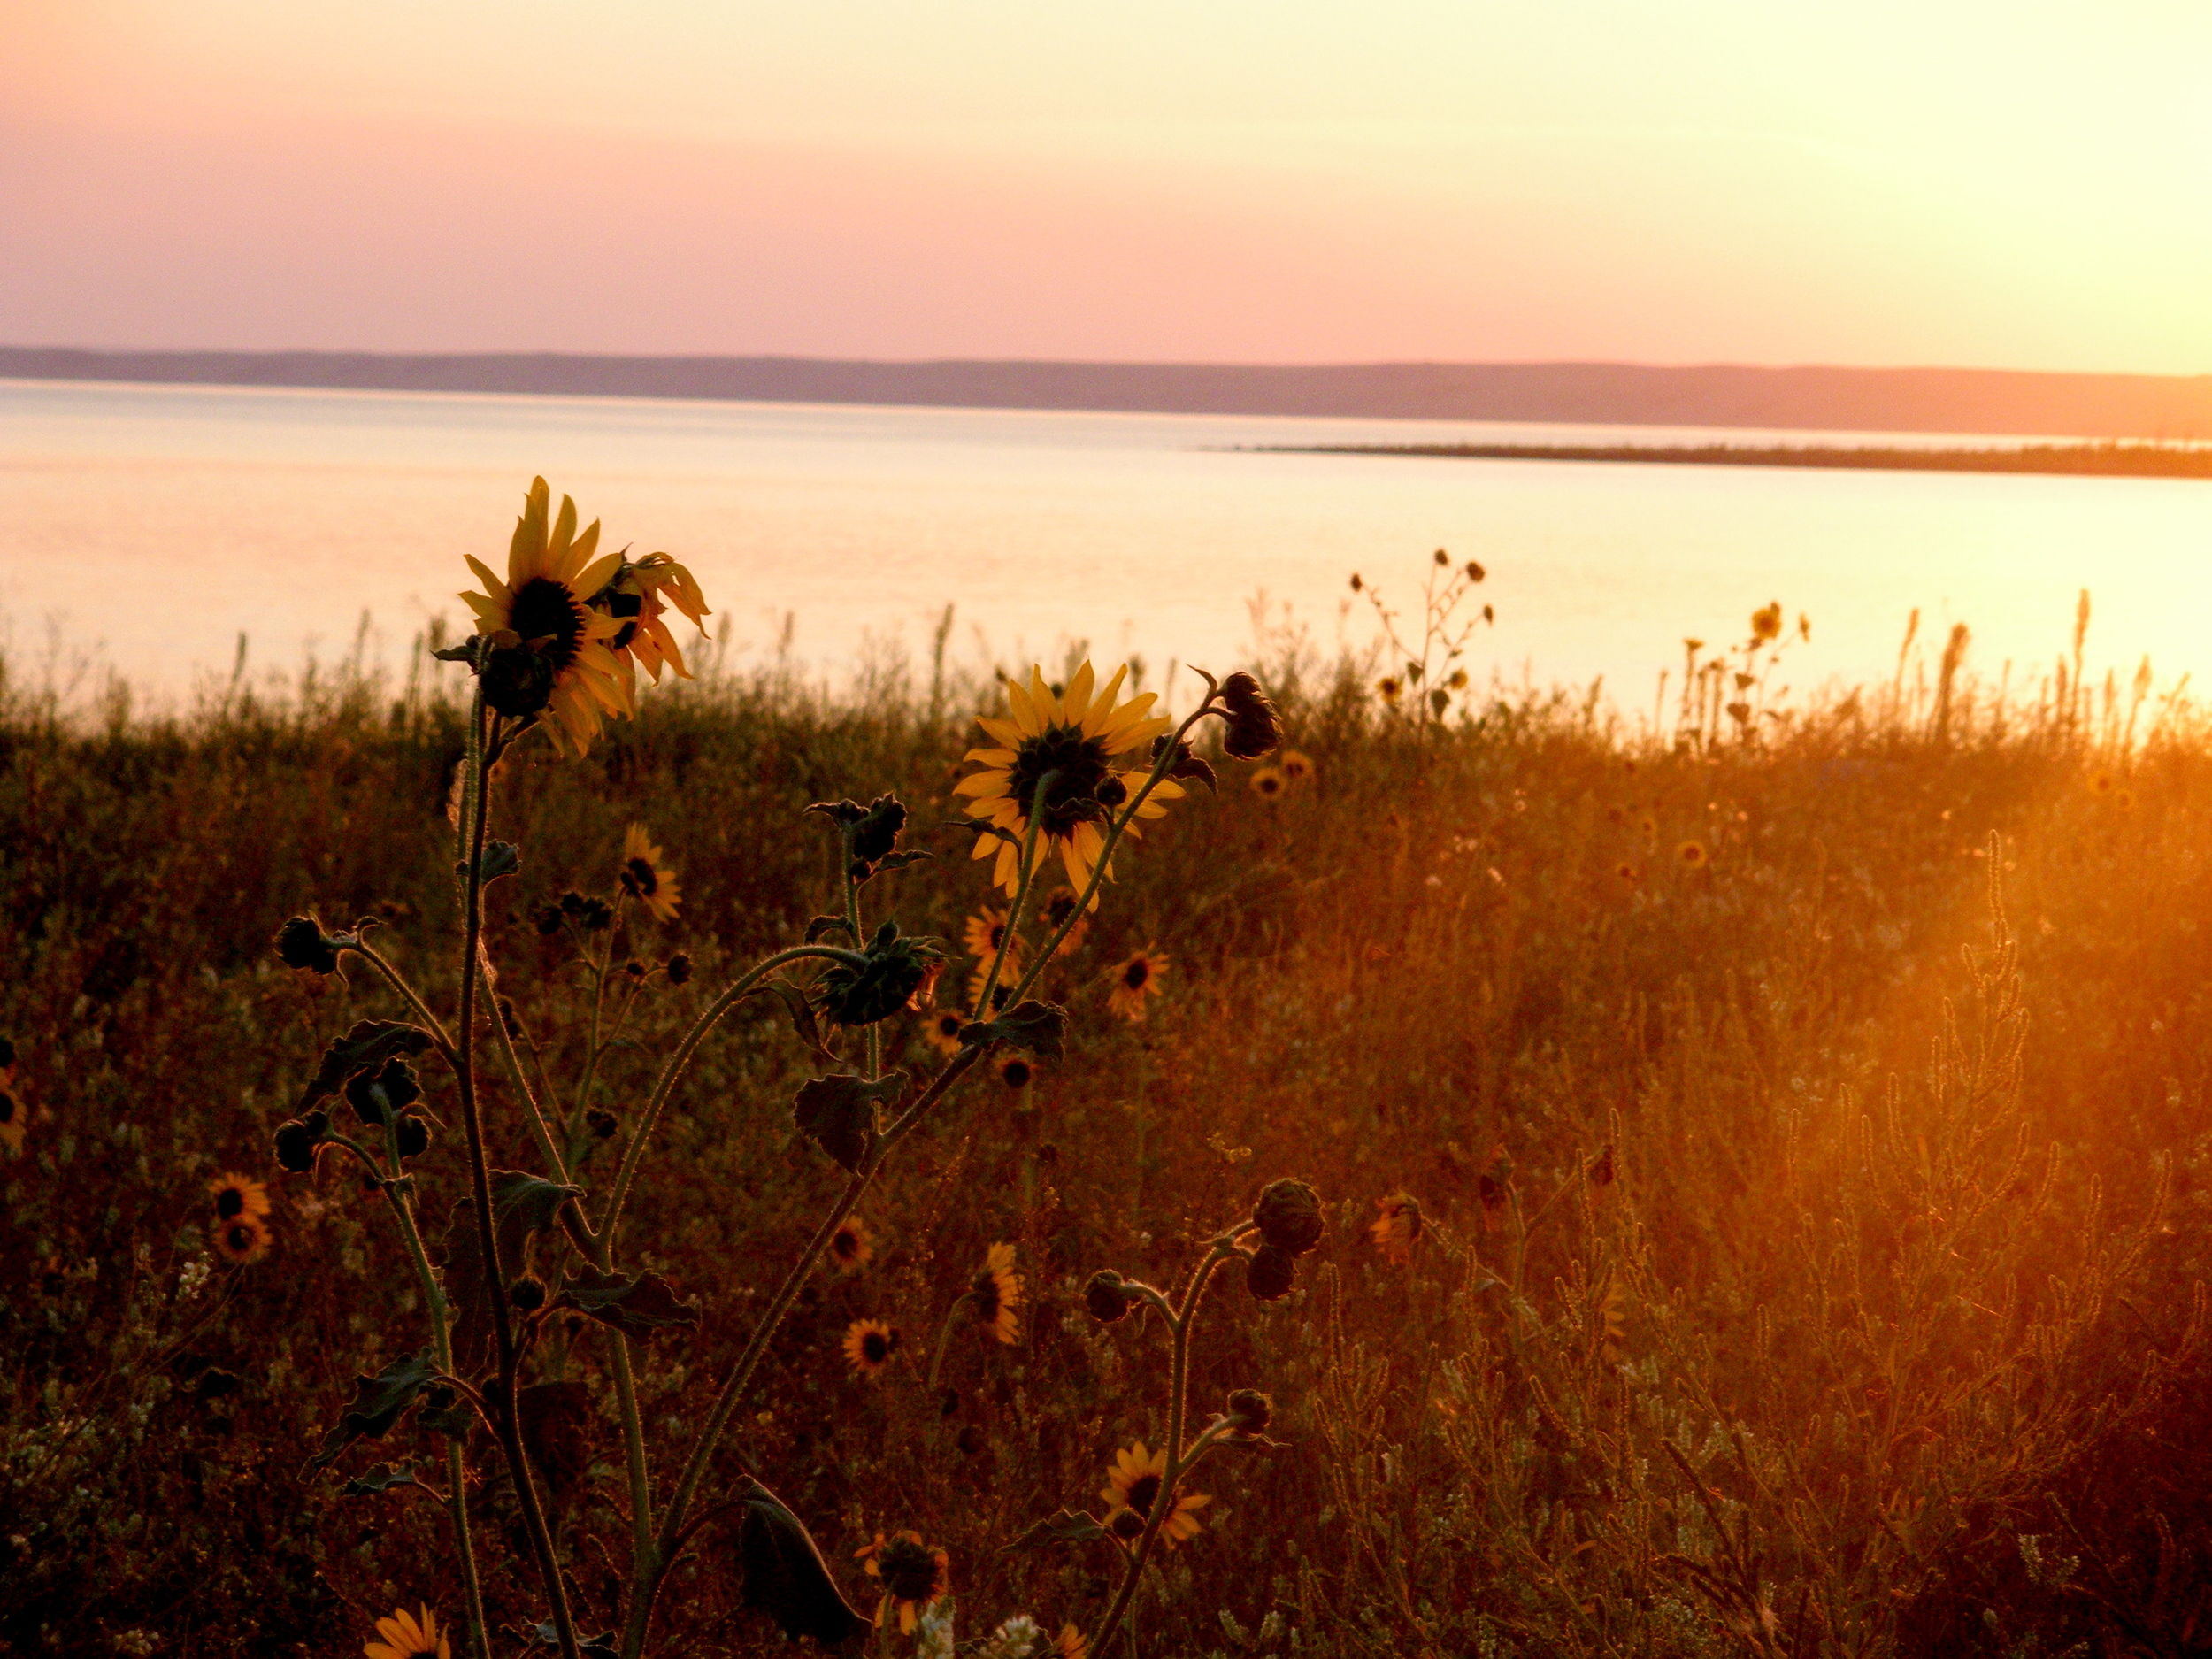 One last glimpse of the Missouri River on a beautiful evening. (August 2013, A. Gross)